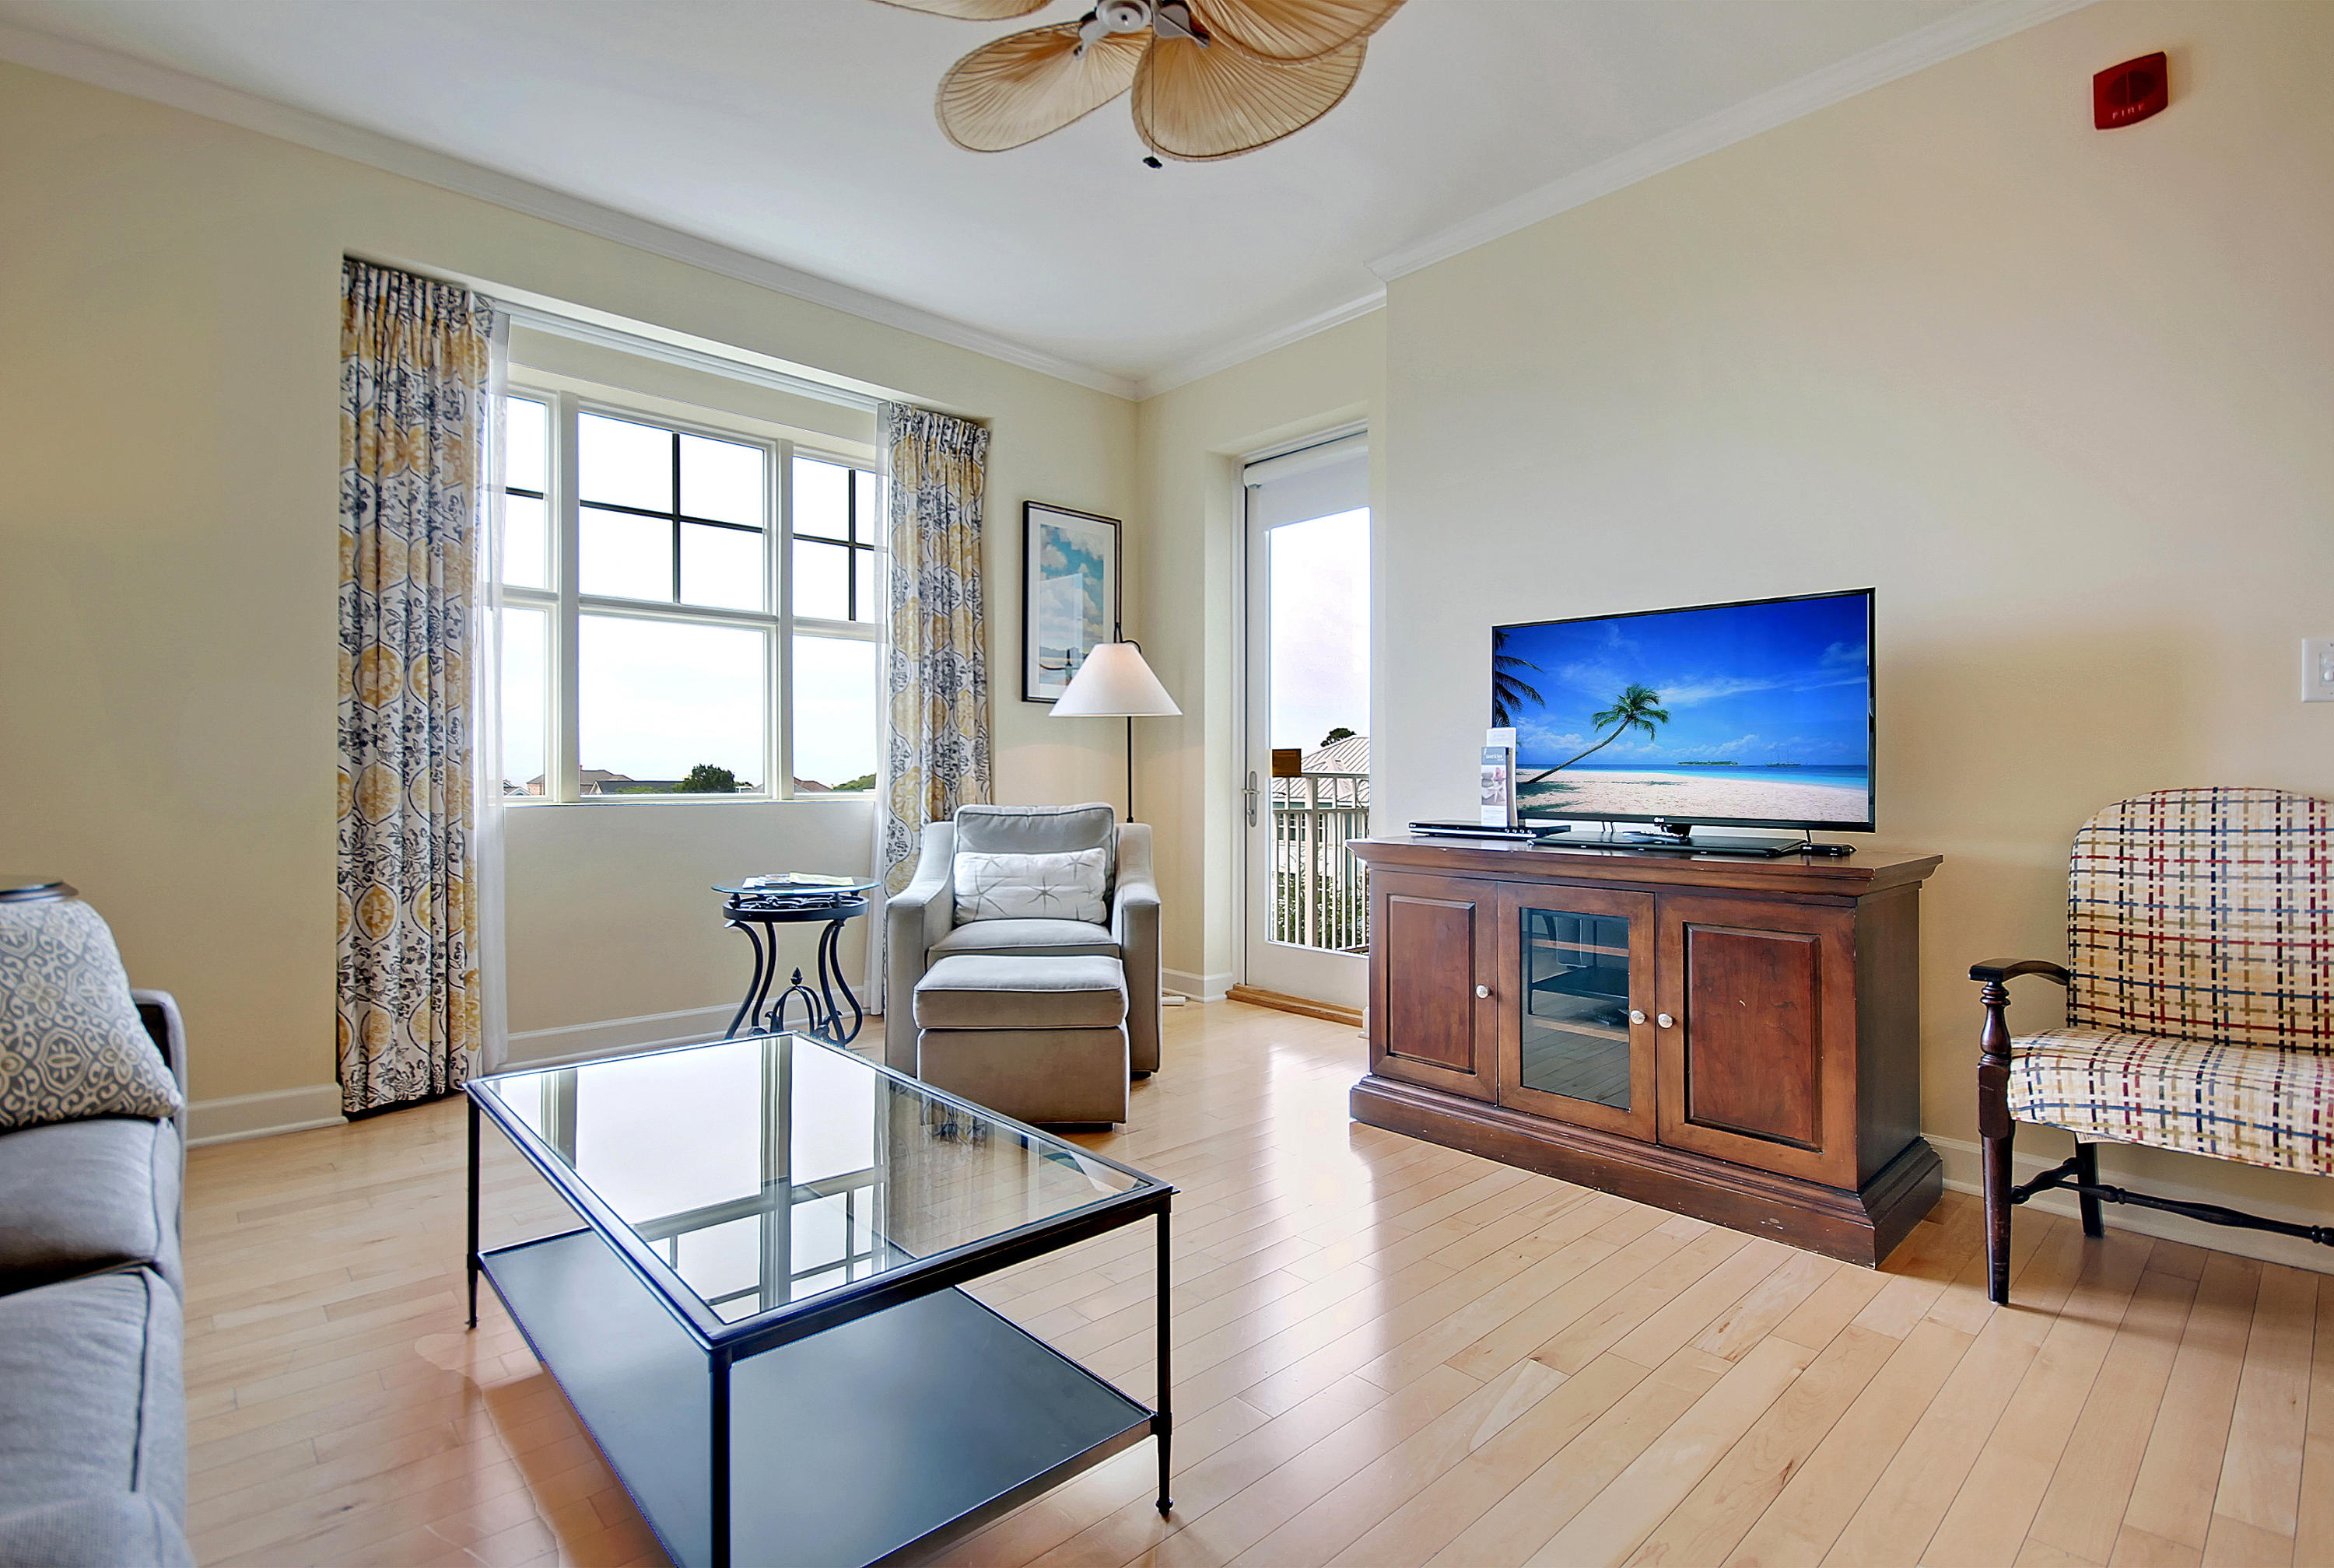 Wild Dunes Homes For Sale - 415/417-B The Village At Wild Dunes, Isle of Palms, SC - 12